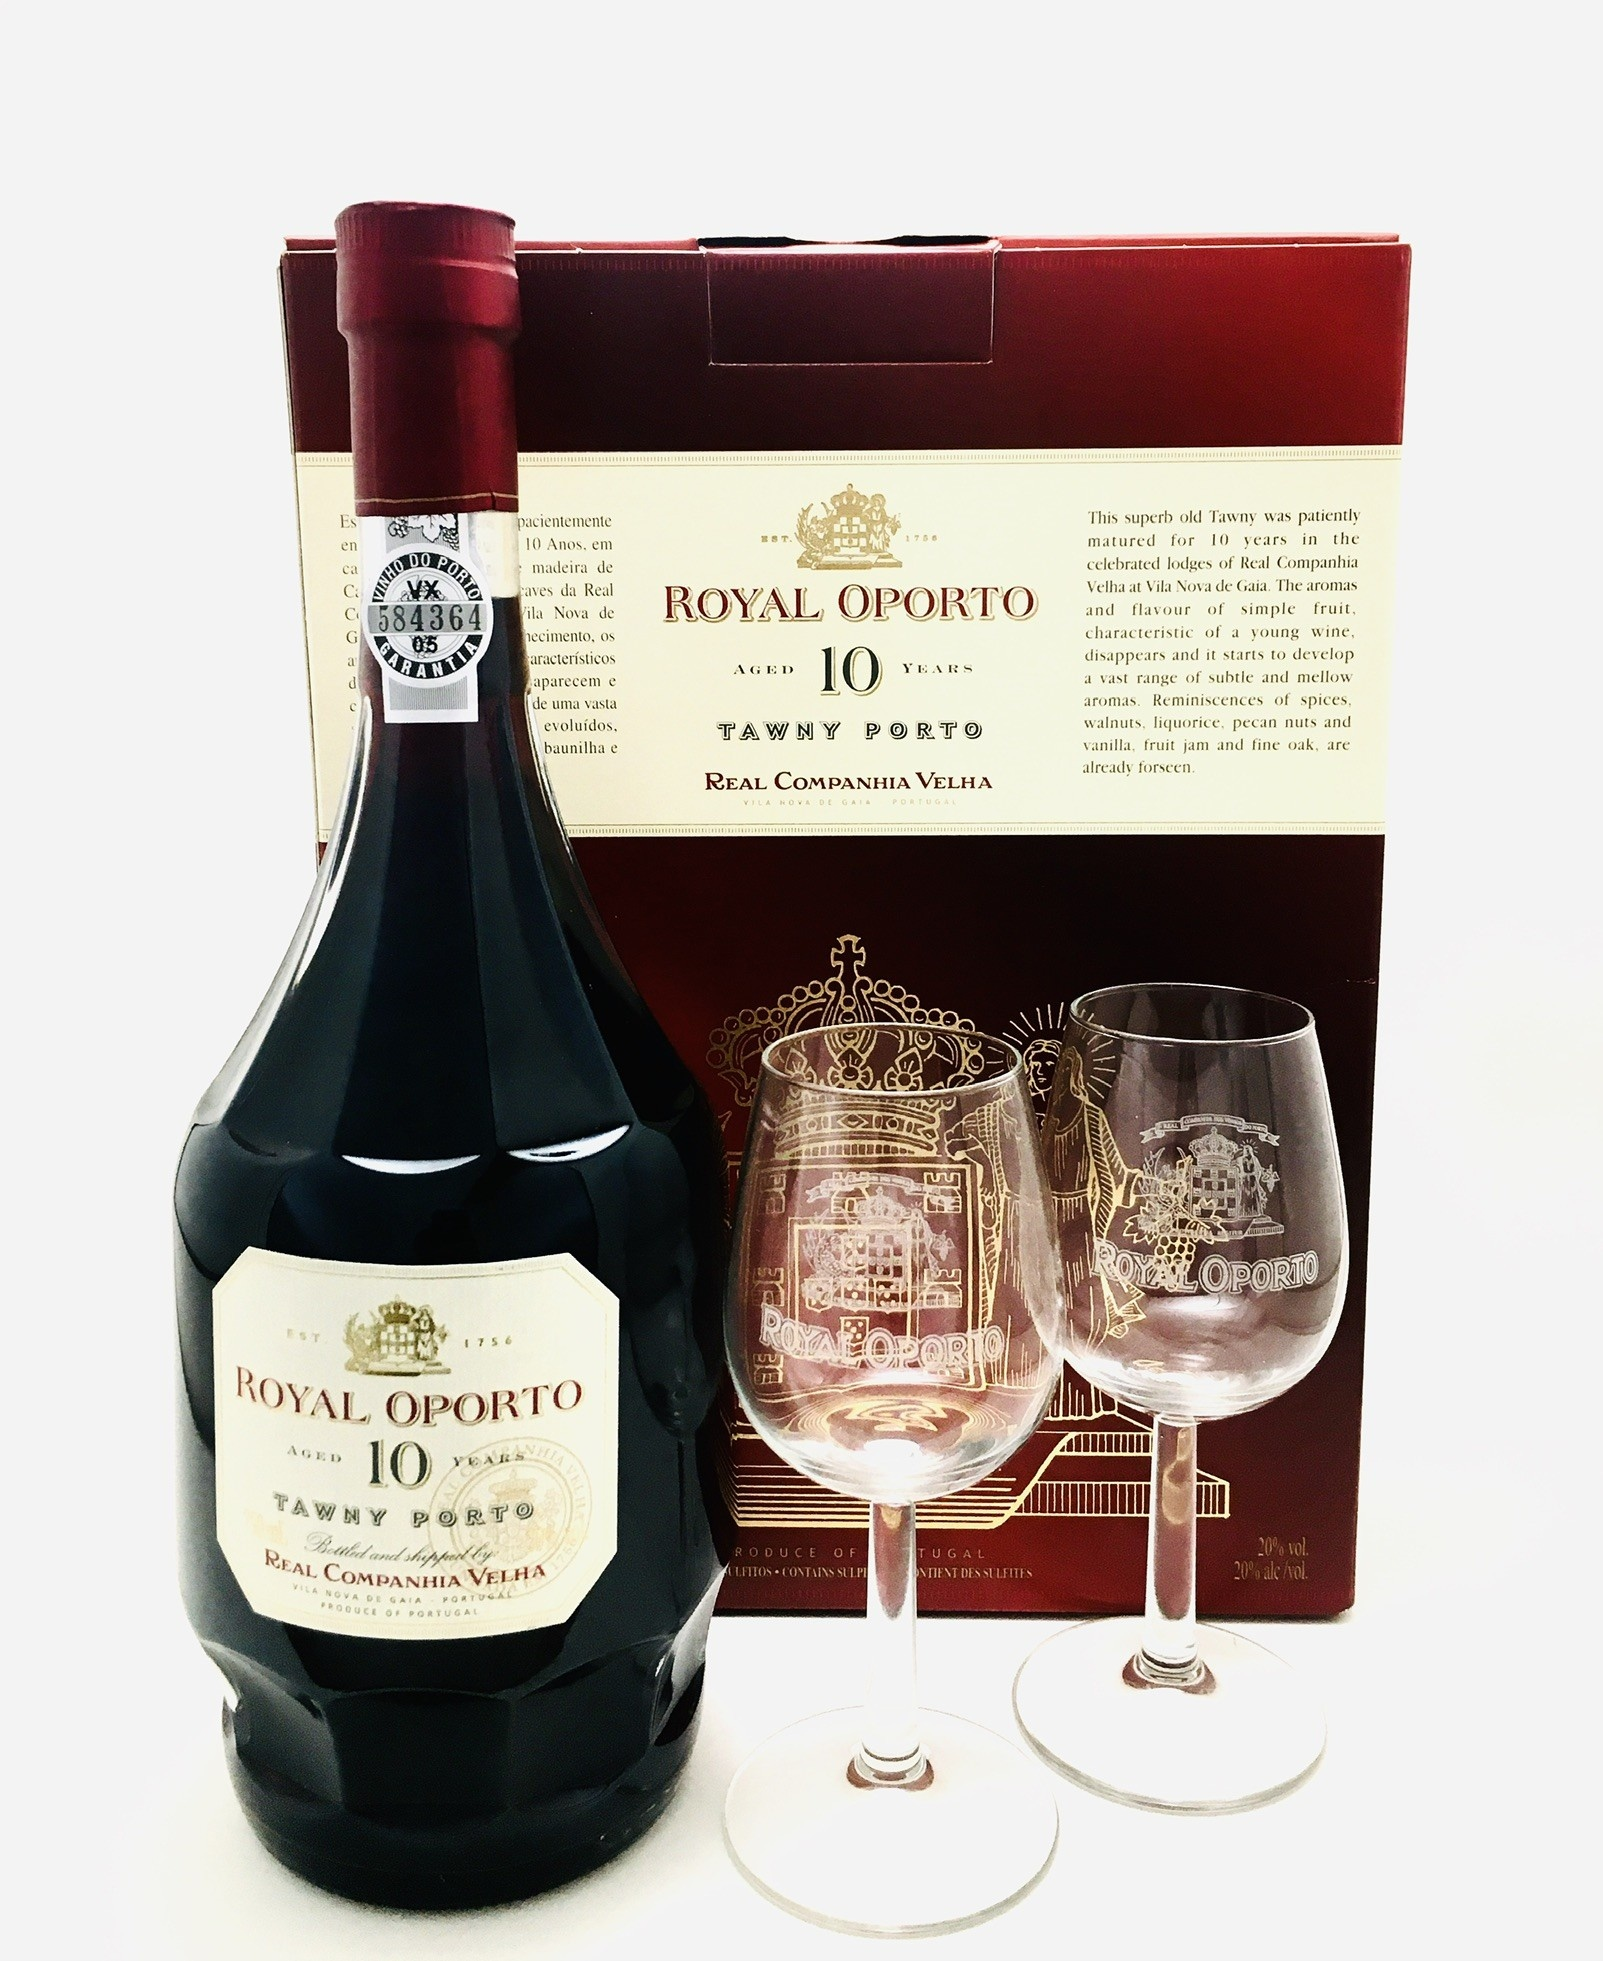 Real Companhia Velha Royal Oporto 10 Year Old Tawny Porto Portugal 2010 & Gift set with 2 Glasses